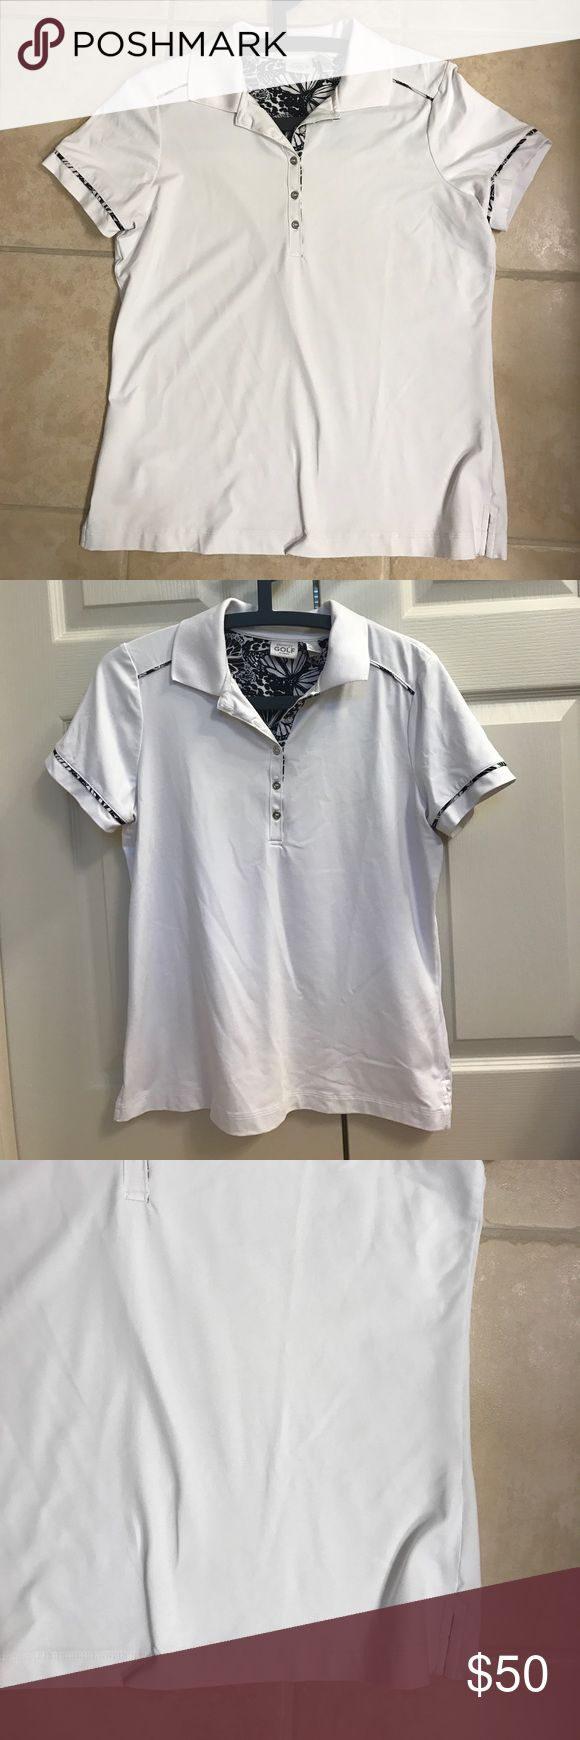 Size 1 (M/8) Chico's white zenergy golf polo shirt Size 1 (M/8) Chico's white zenergy golf polo shirt Chico's Tops